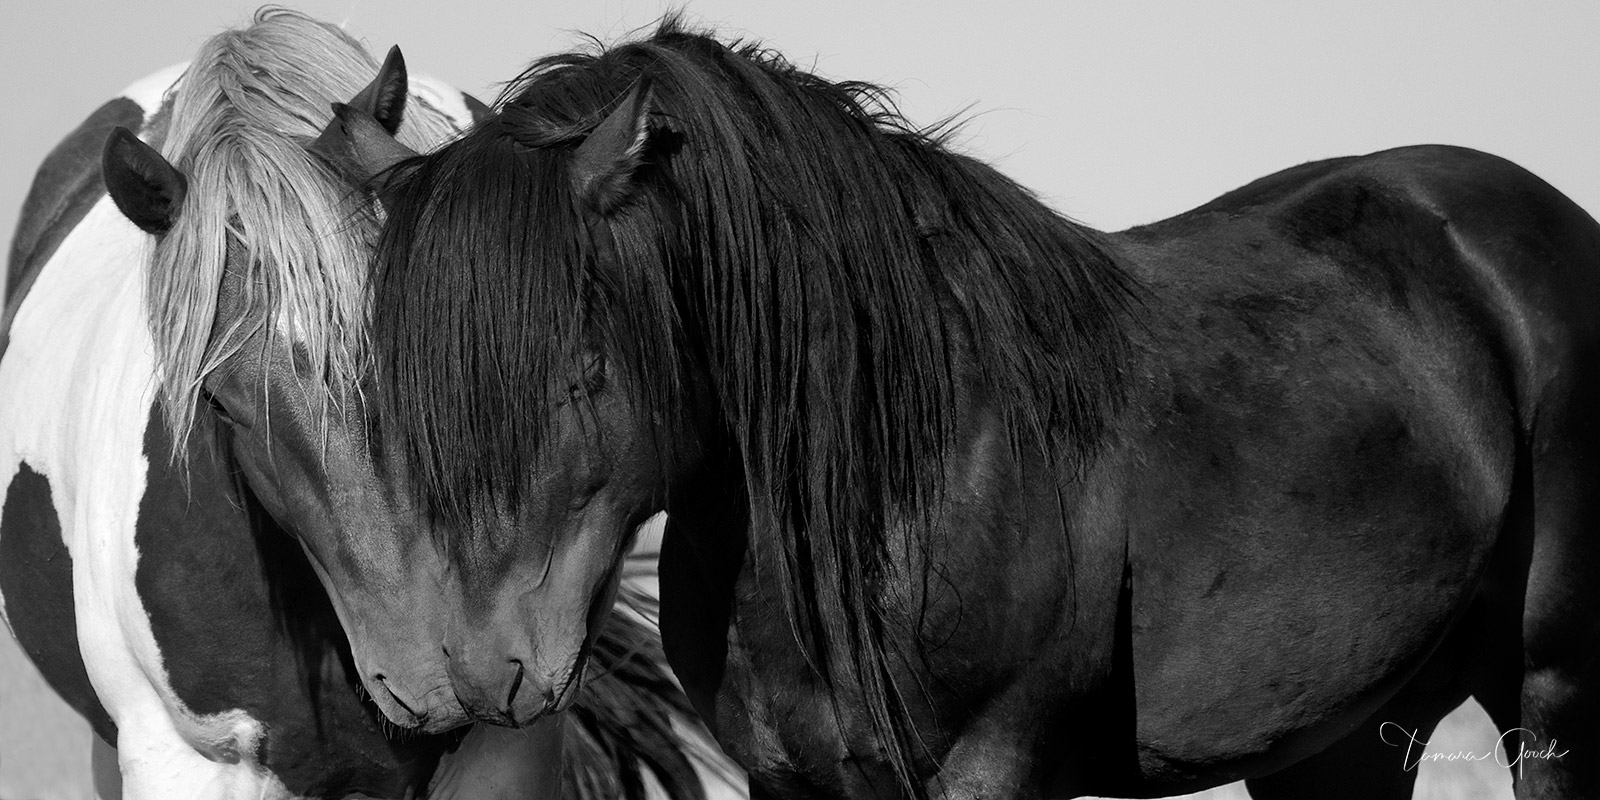 wild, mustang, mustangs, harmony, equestrian, stallions, portrait, collectible, black and white, , photo